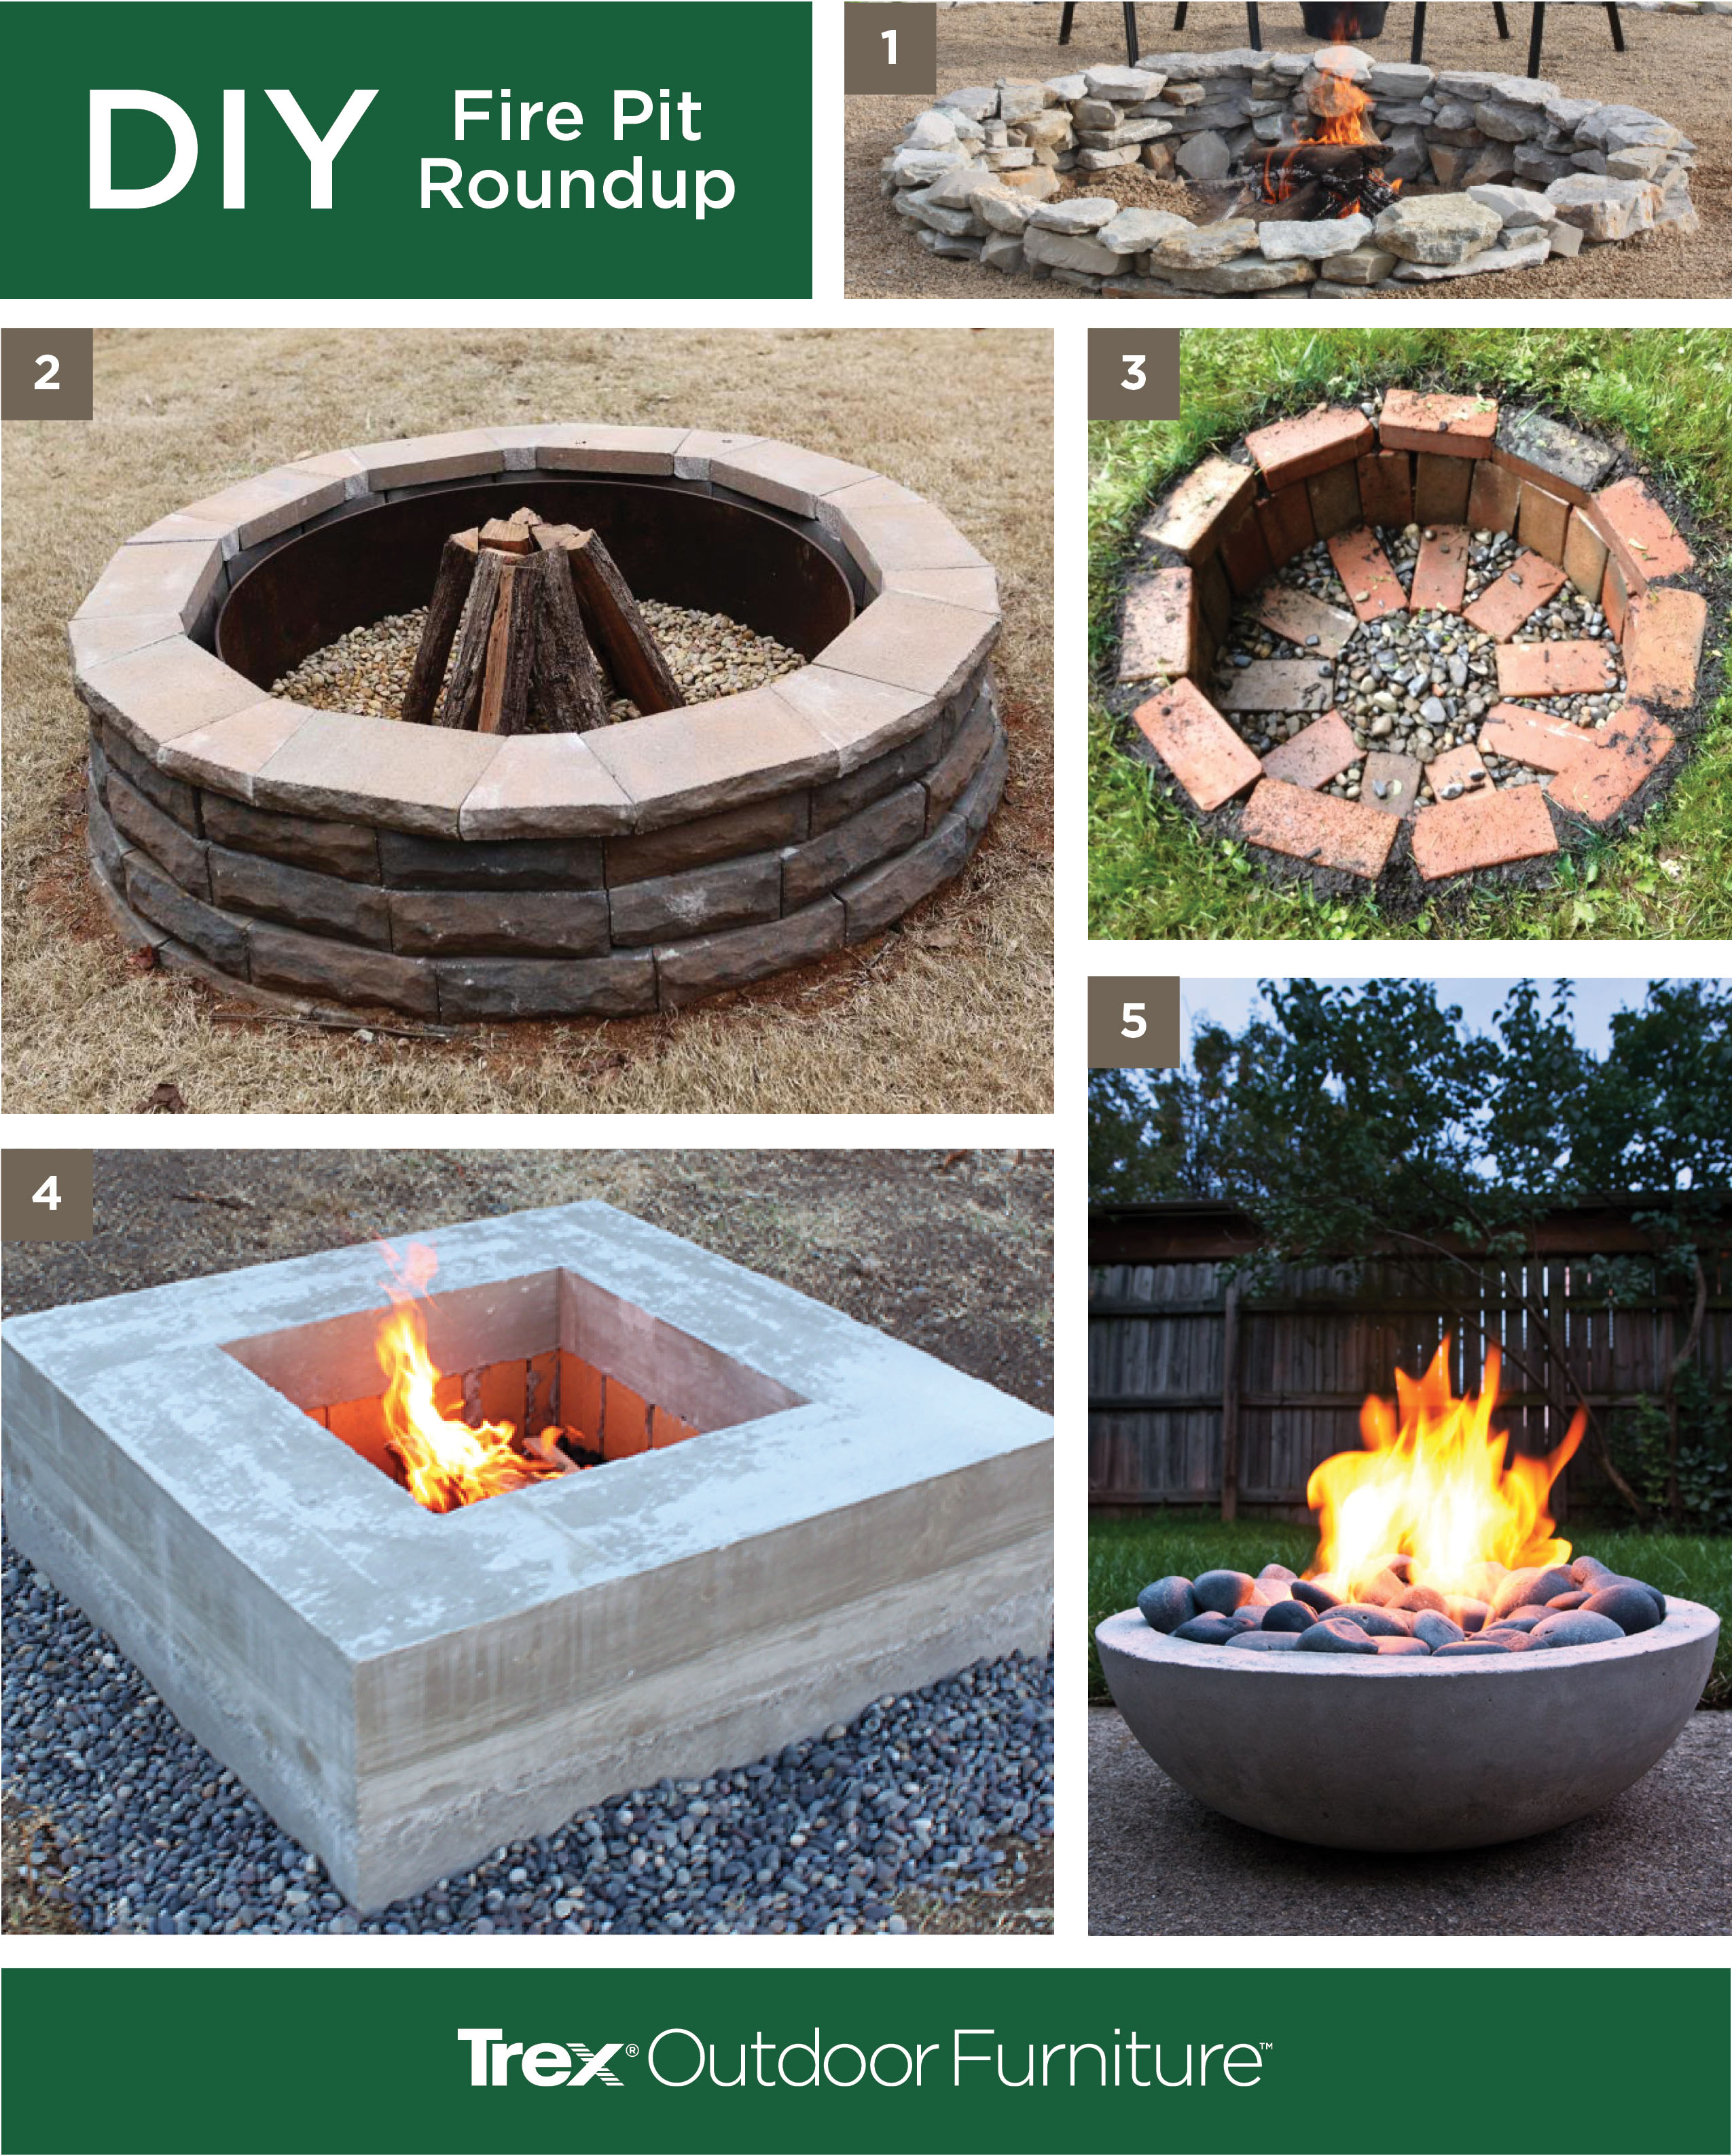 Warm Up With a DIY Fire Pit